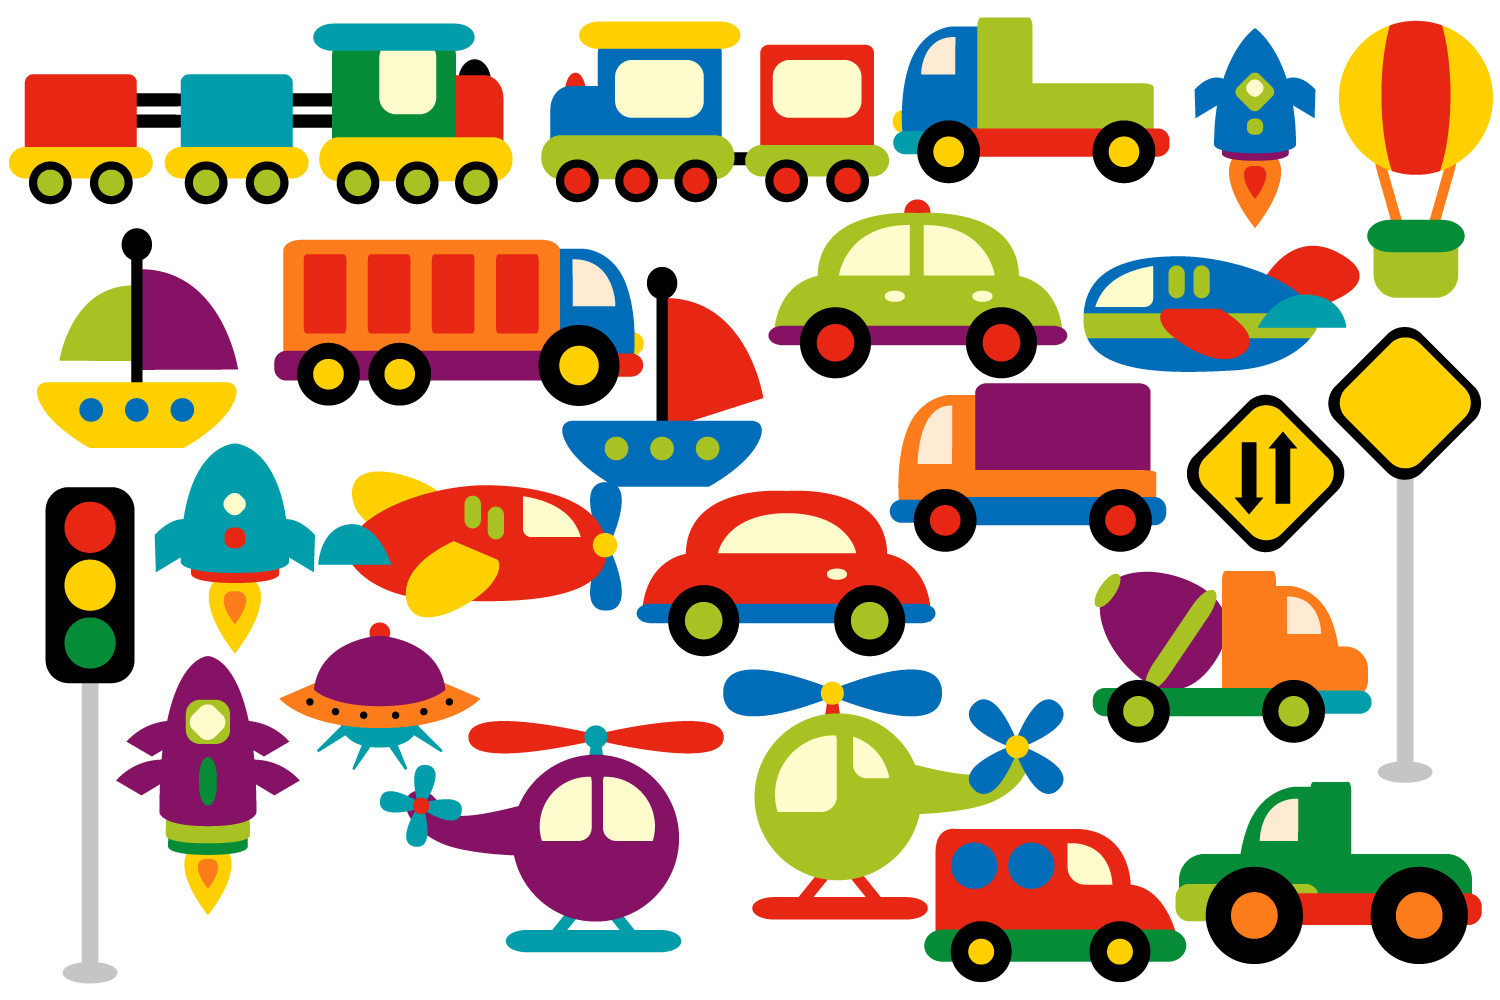 Brand-new Transportation clipart graphics (water, | Design Bundles GJ15